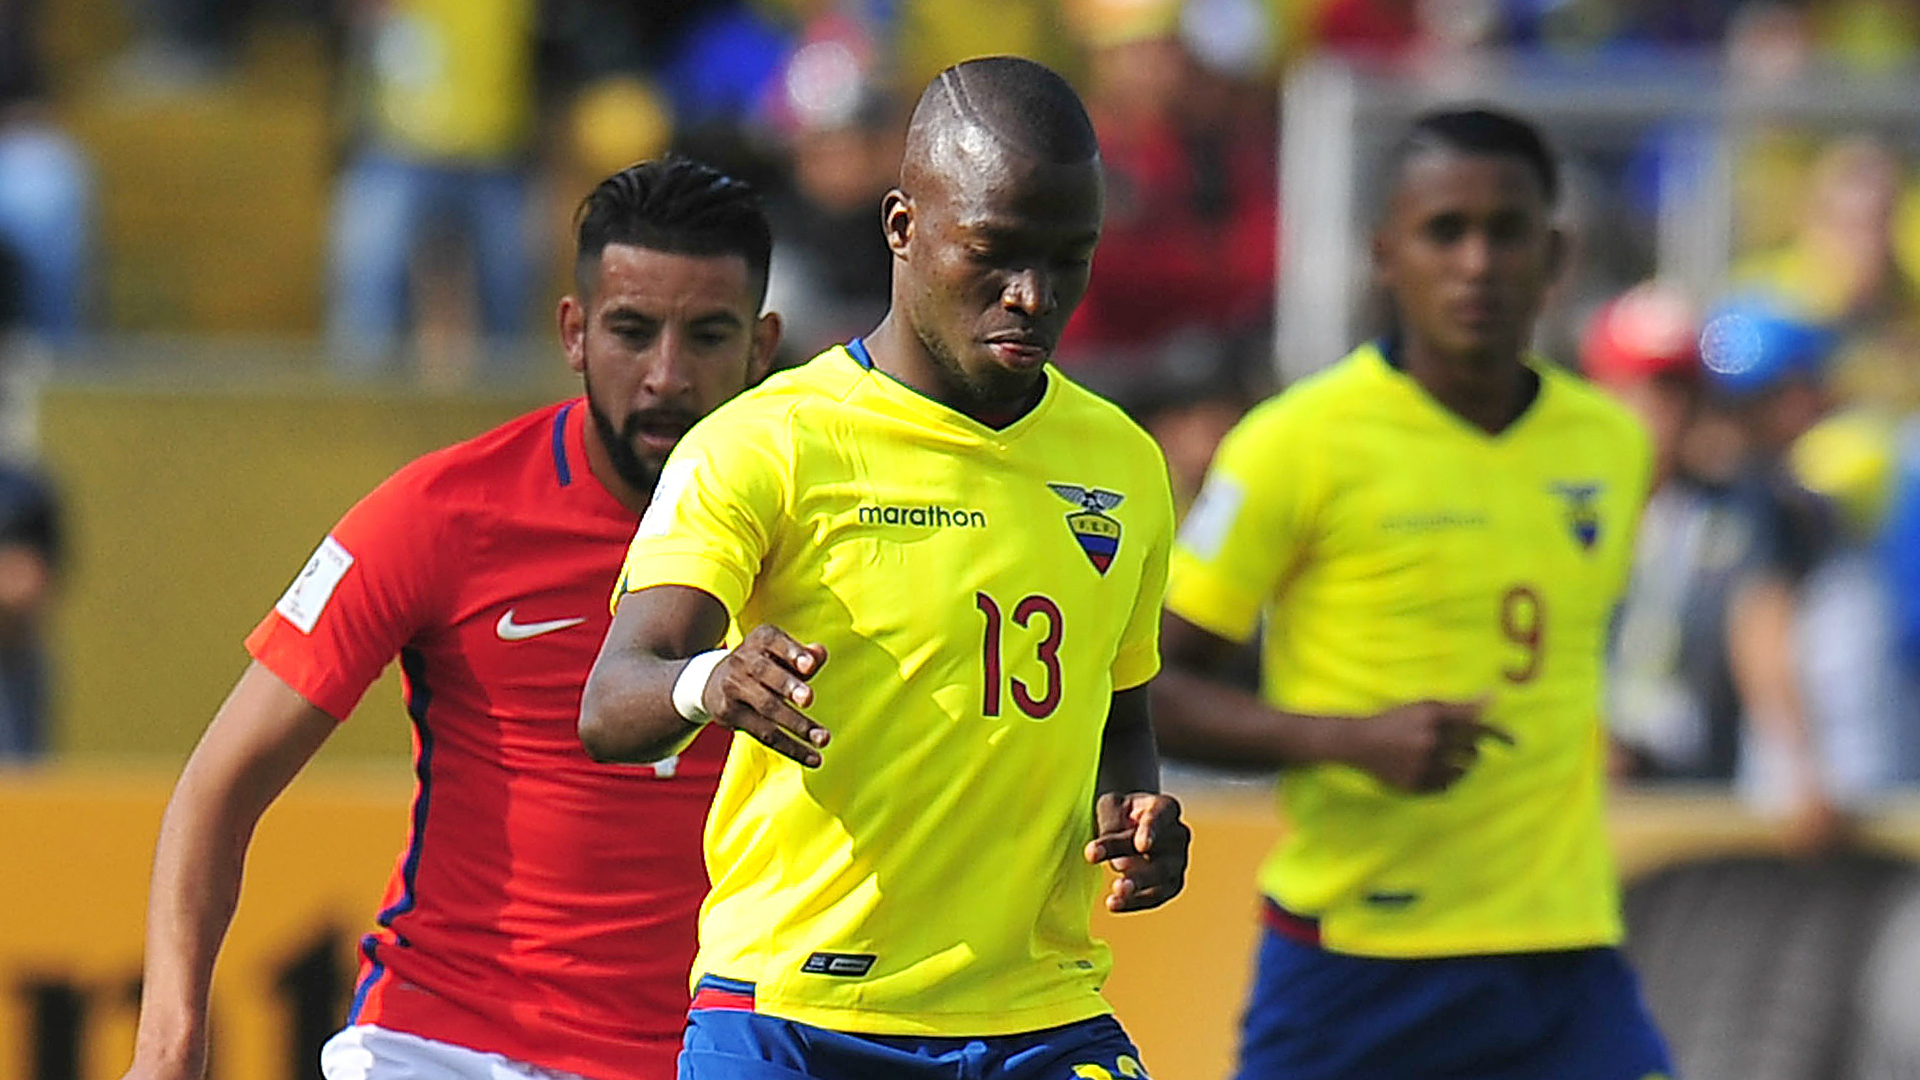 Enner Valencia playing for the Ecuador national team.